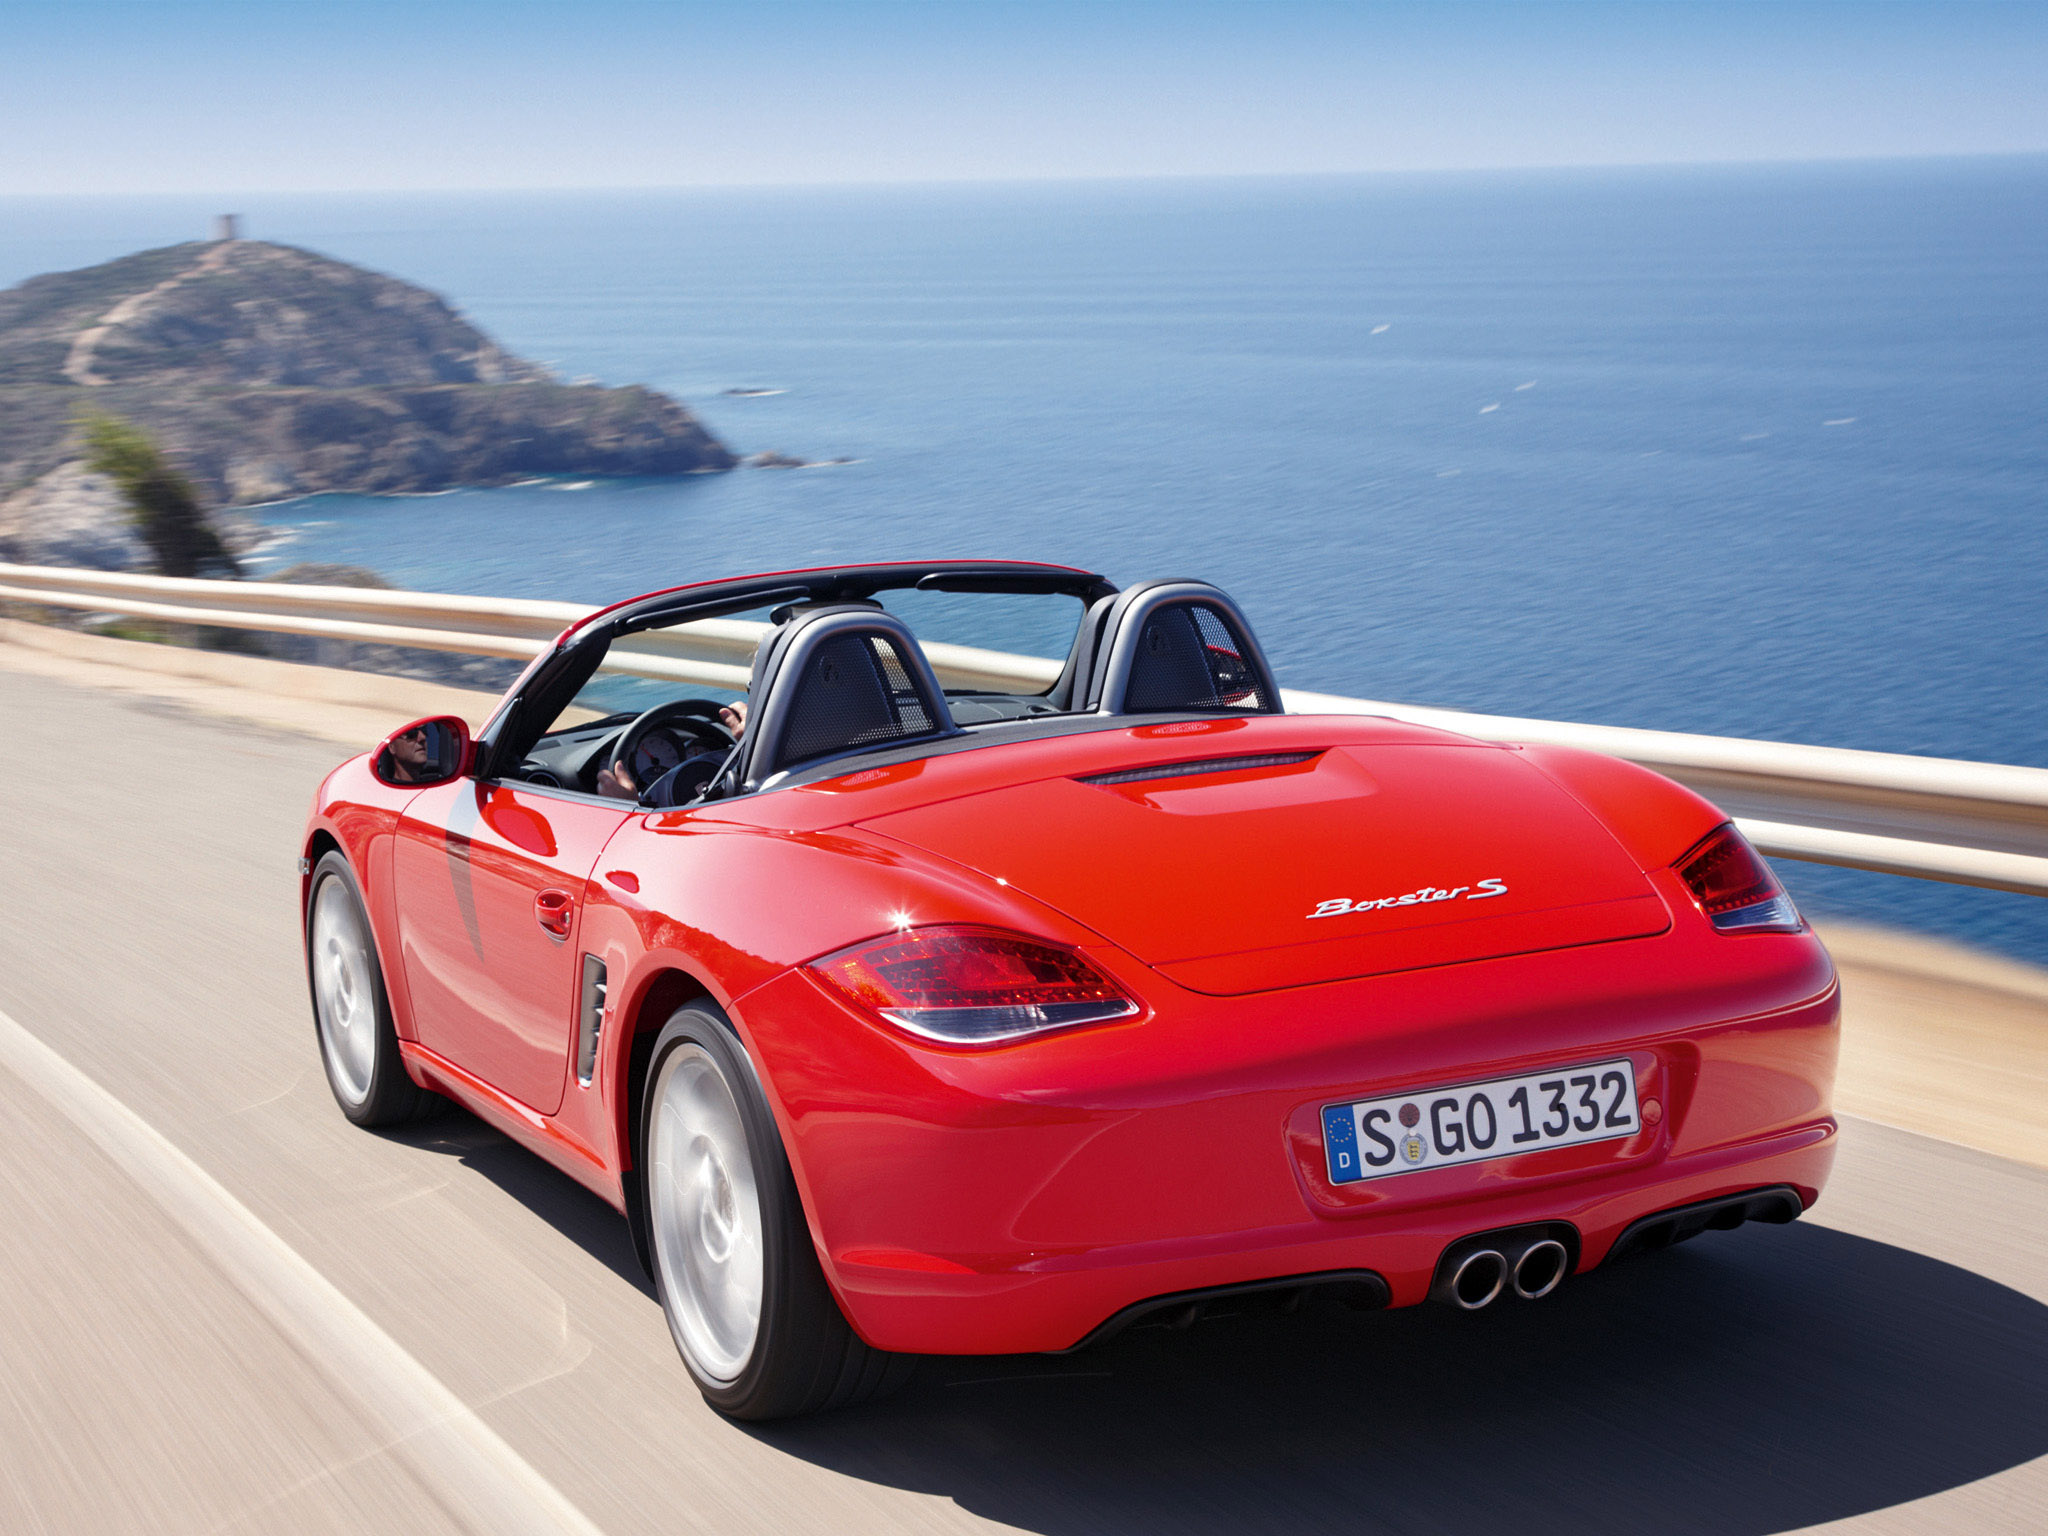 porsche boxster s 987 2009 porsche boxster s 987 2009 photo 04 car in pictures car photo gallery. Black Bedroom Furniture Sets. Home Design Ideas